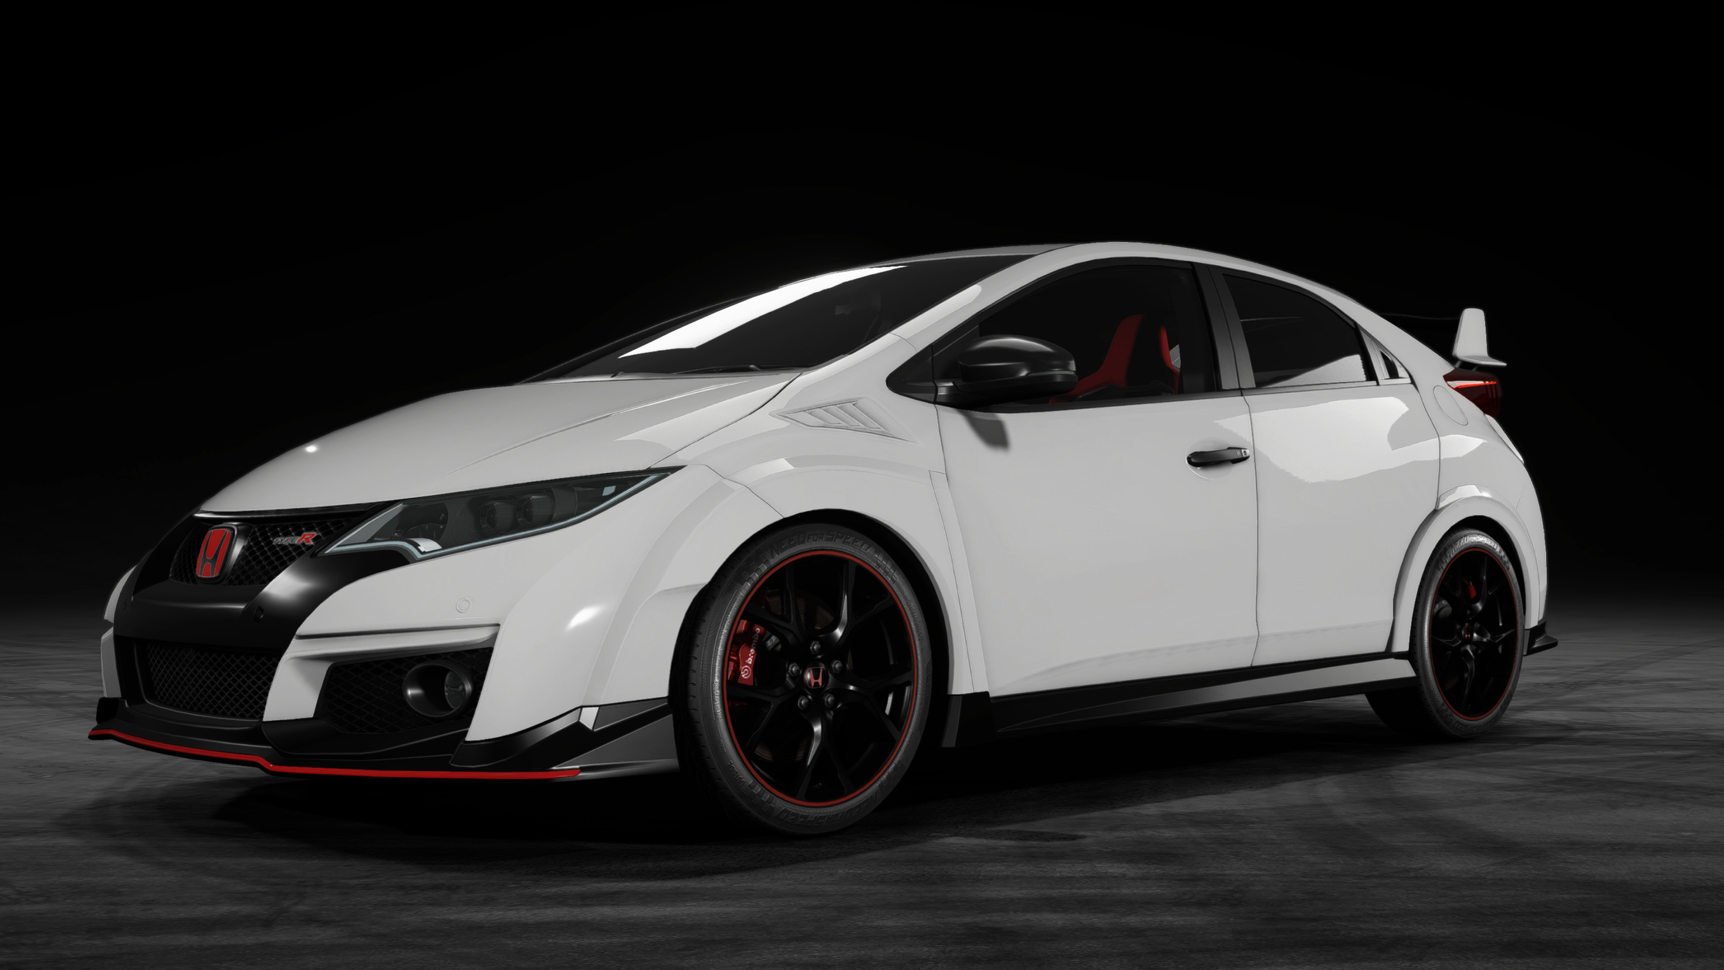 Honda Civic Type-R (FK2)